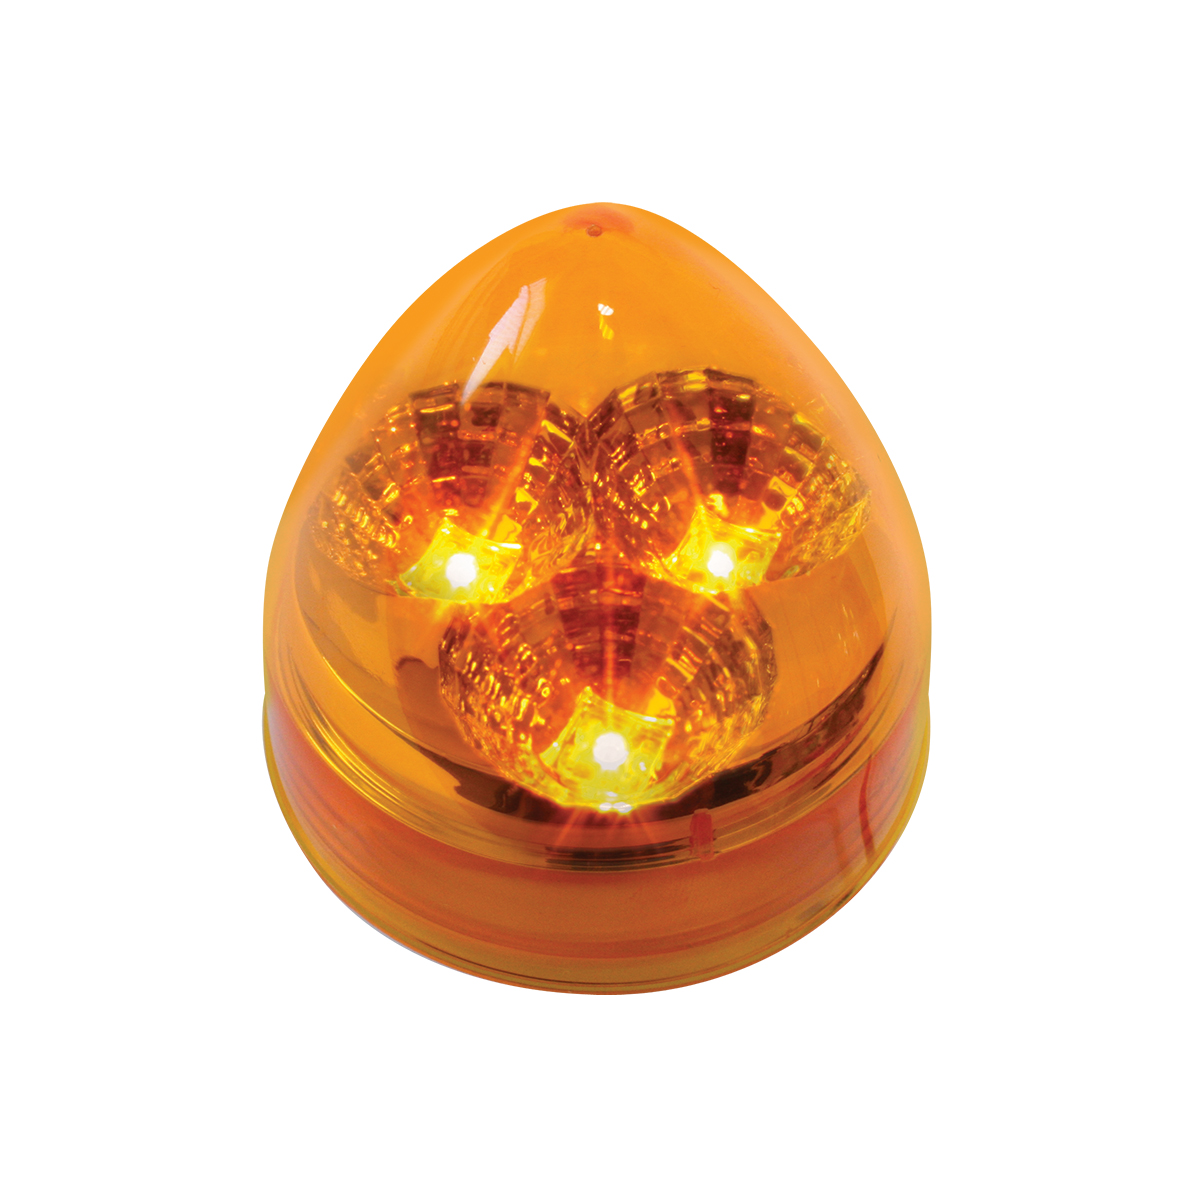 Beehive Spyder LED in Amber/Amber